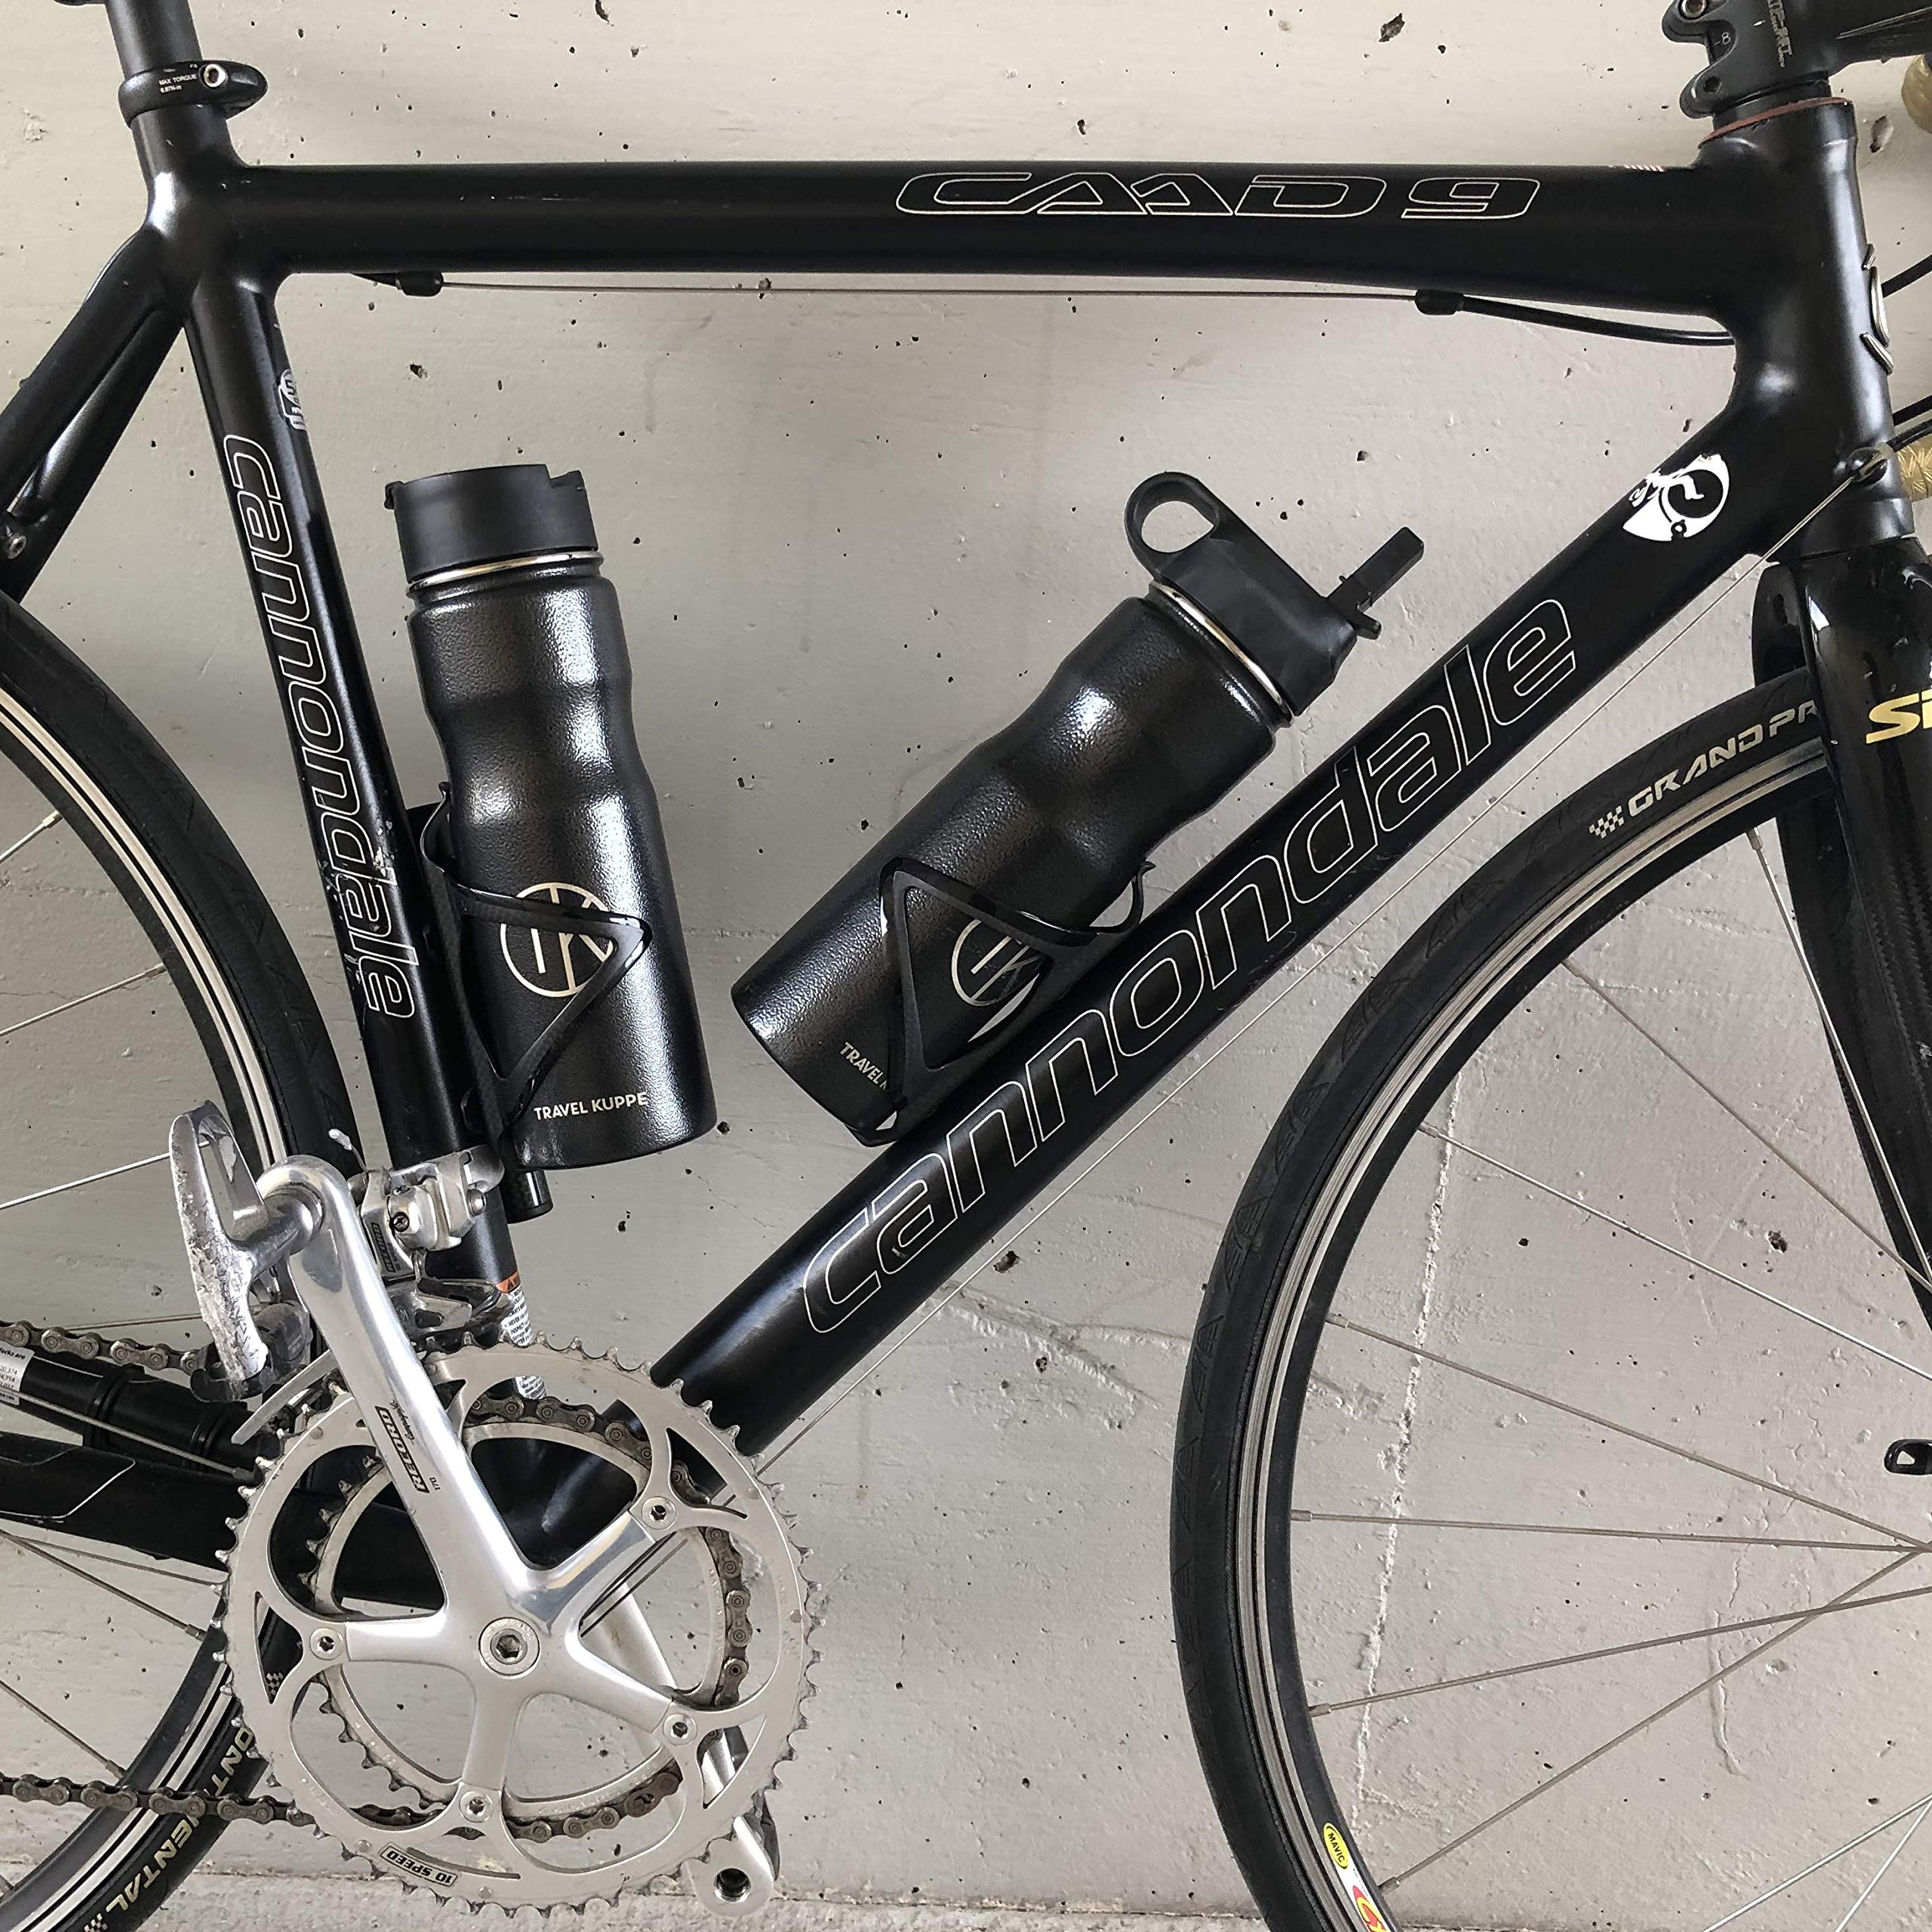 Travel Kuppe Vacuum Insulated Stainless Steel Cycling Sports Water Bottle, Includes Both Straw and Sip Lid by Travel Kuppe (Image #3)